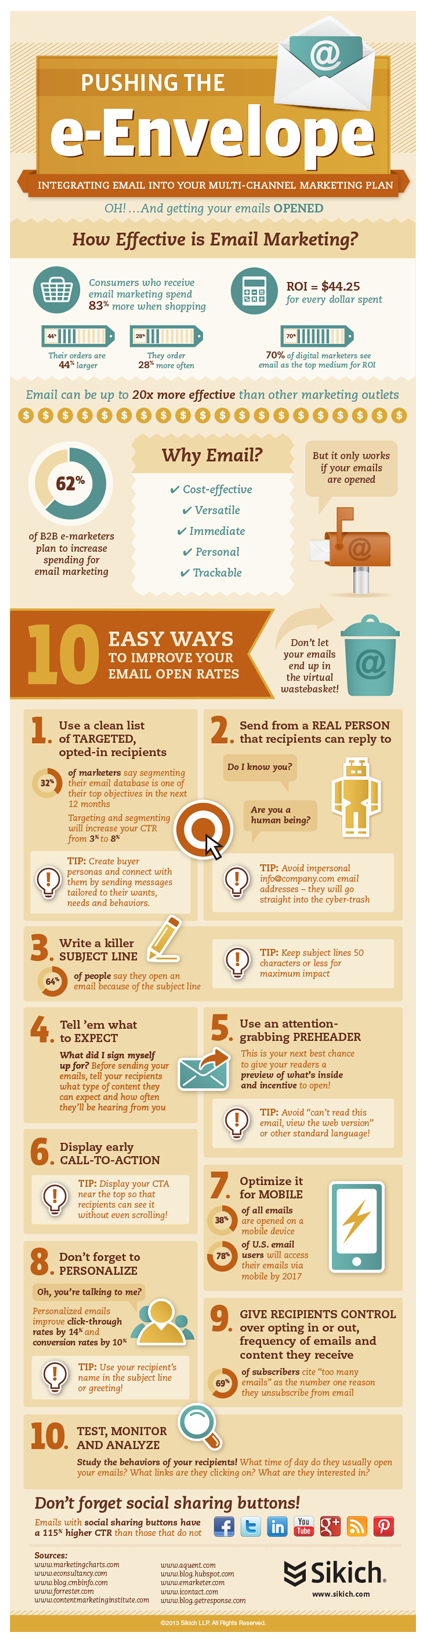 10-easy-ways-to-improve-your-email-open-rates_51bcaecabe43c